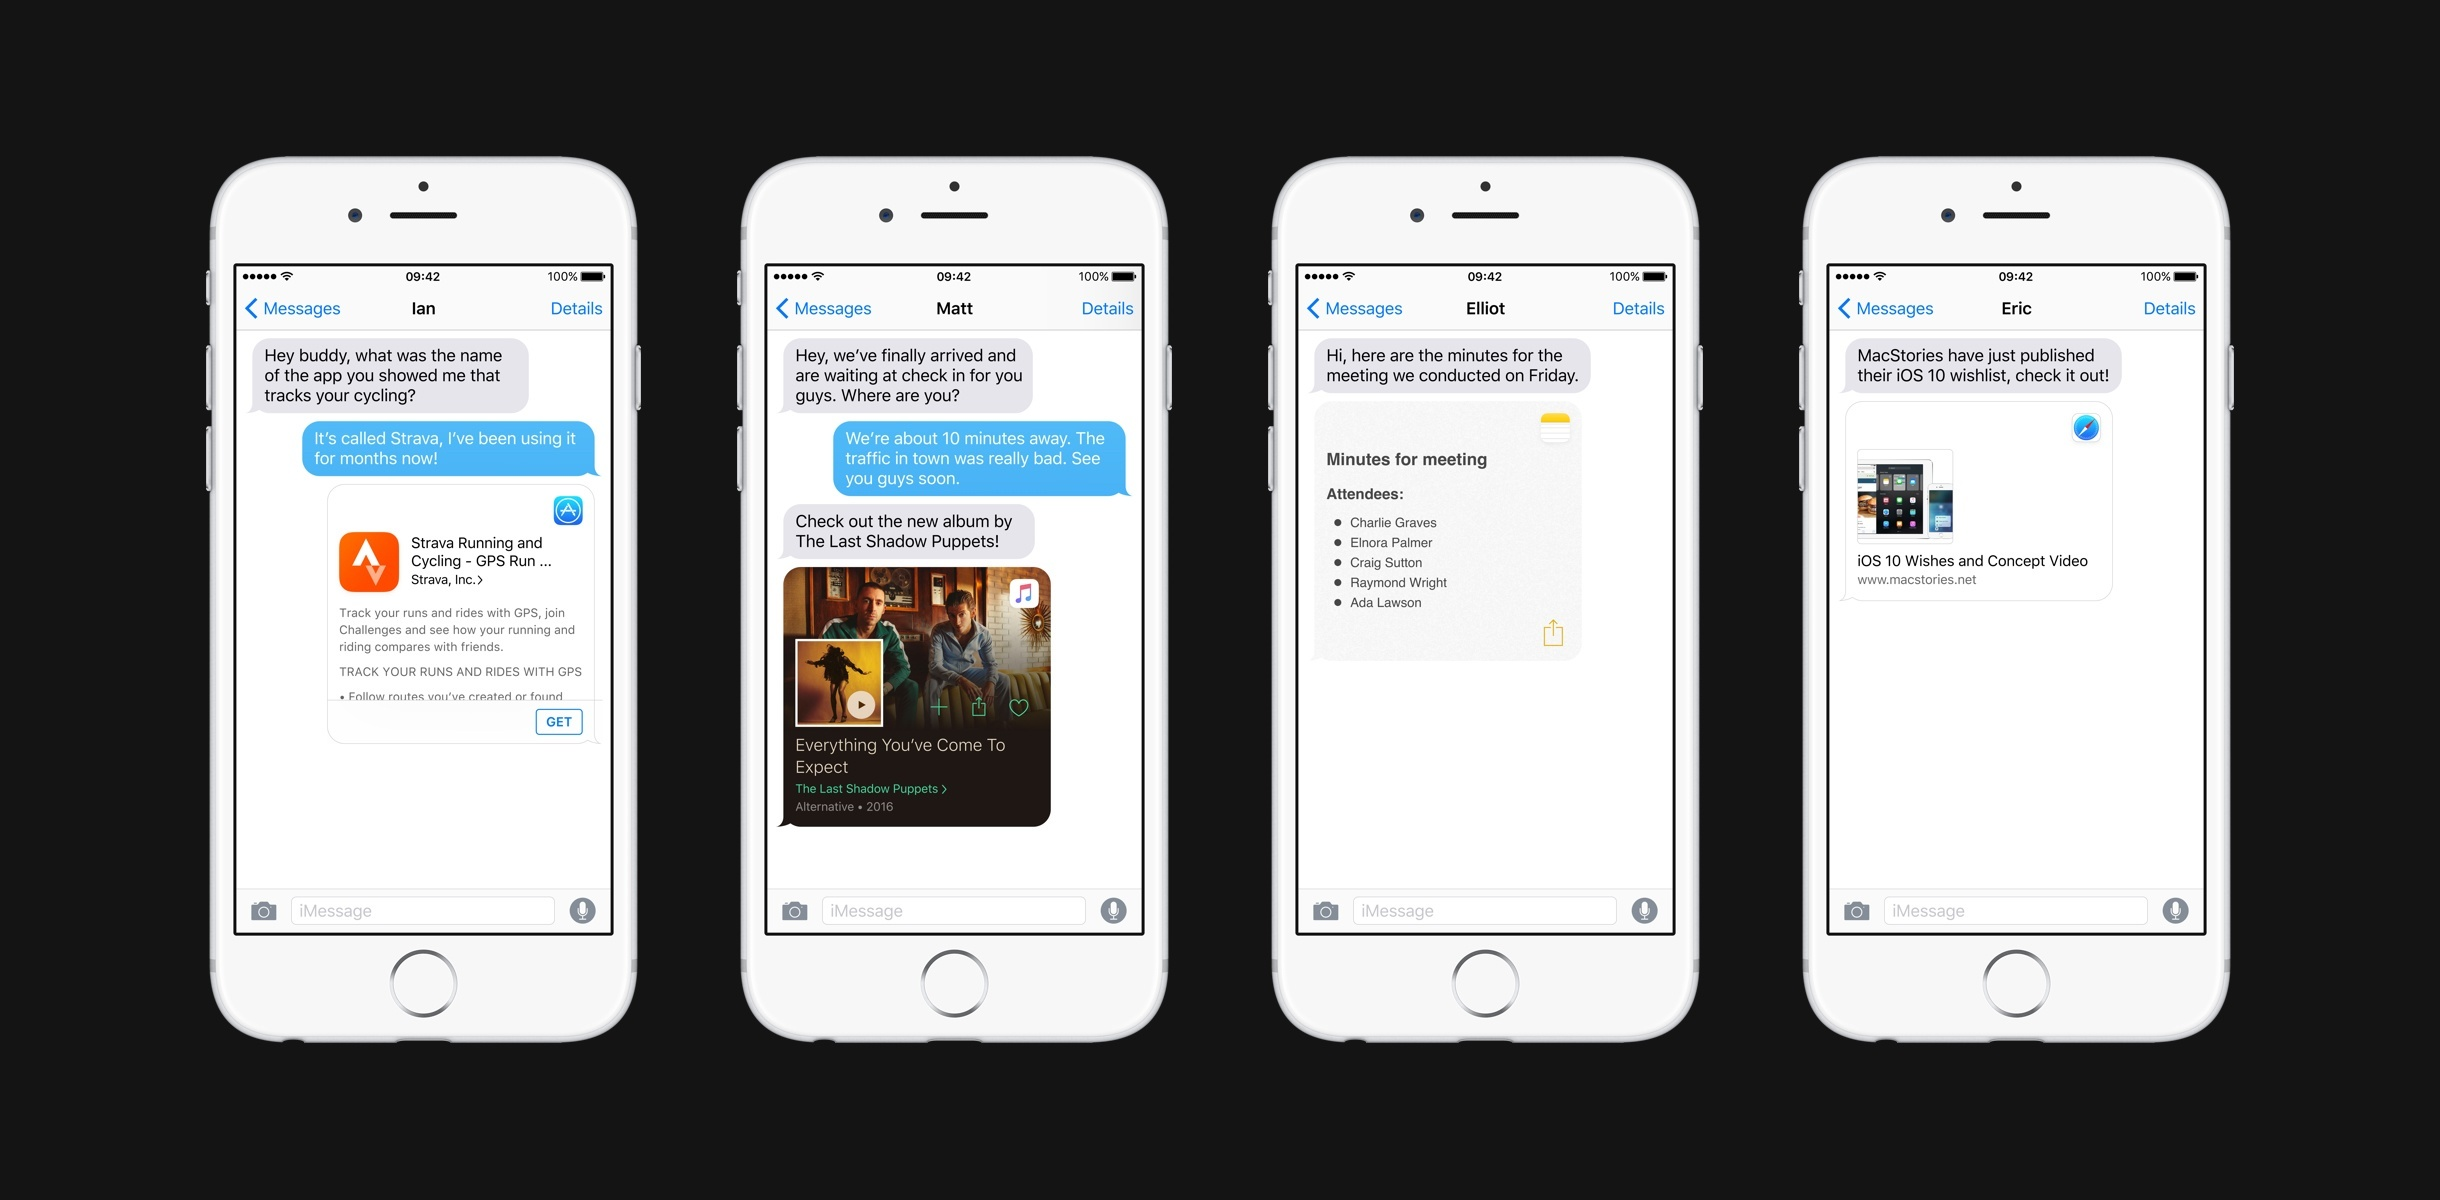 Rich previews in Messages for the App Store, Apple Music, Notes, and Safari content.